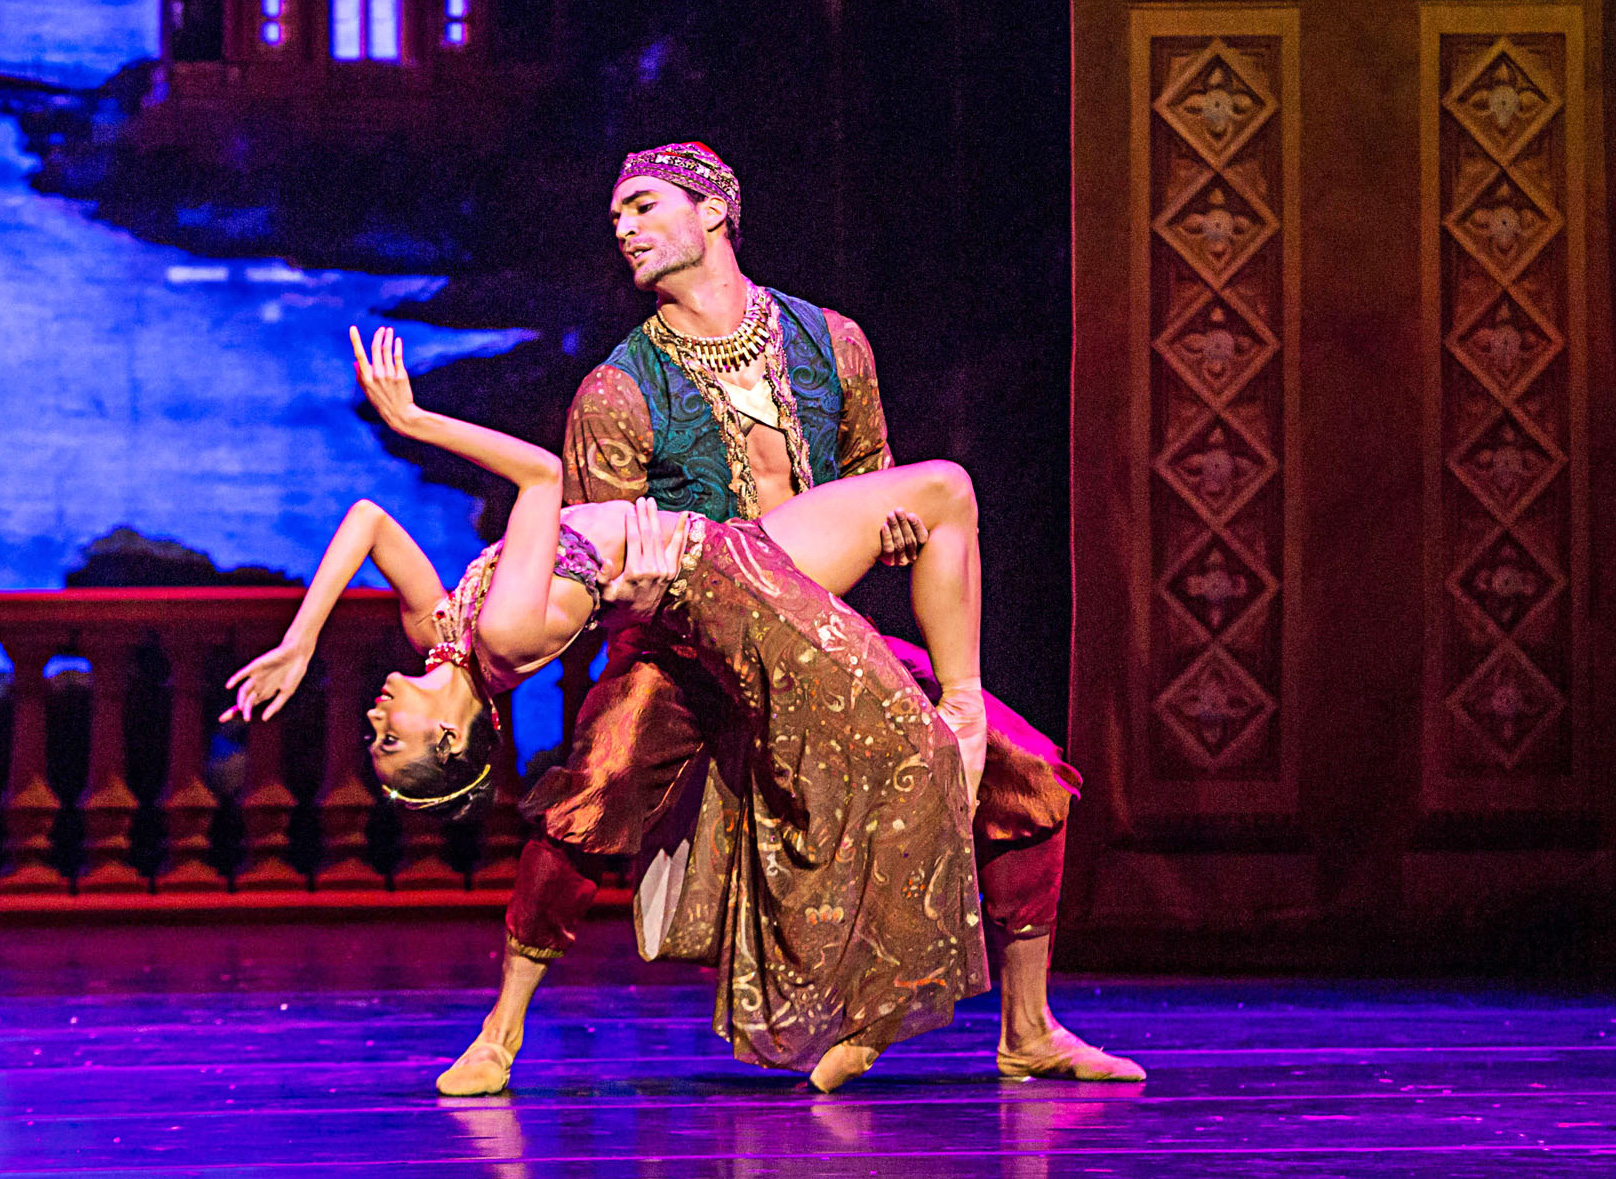 An Arabian dance offers a hypnotizing break in a show that packs its stage with dancers performing to intense musical scores.